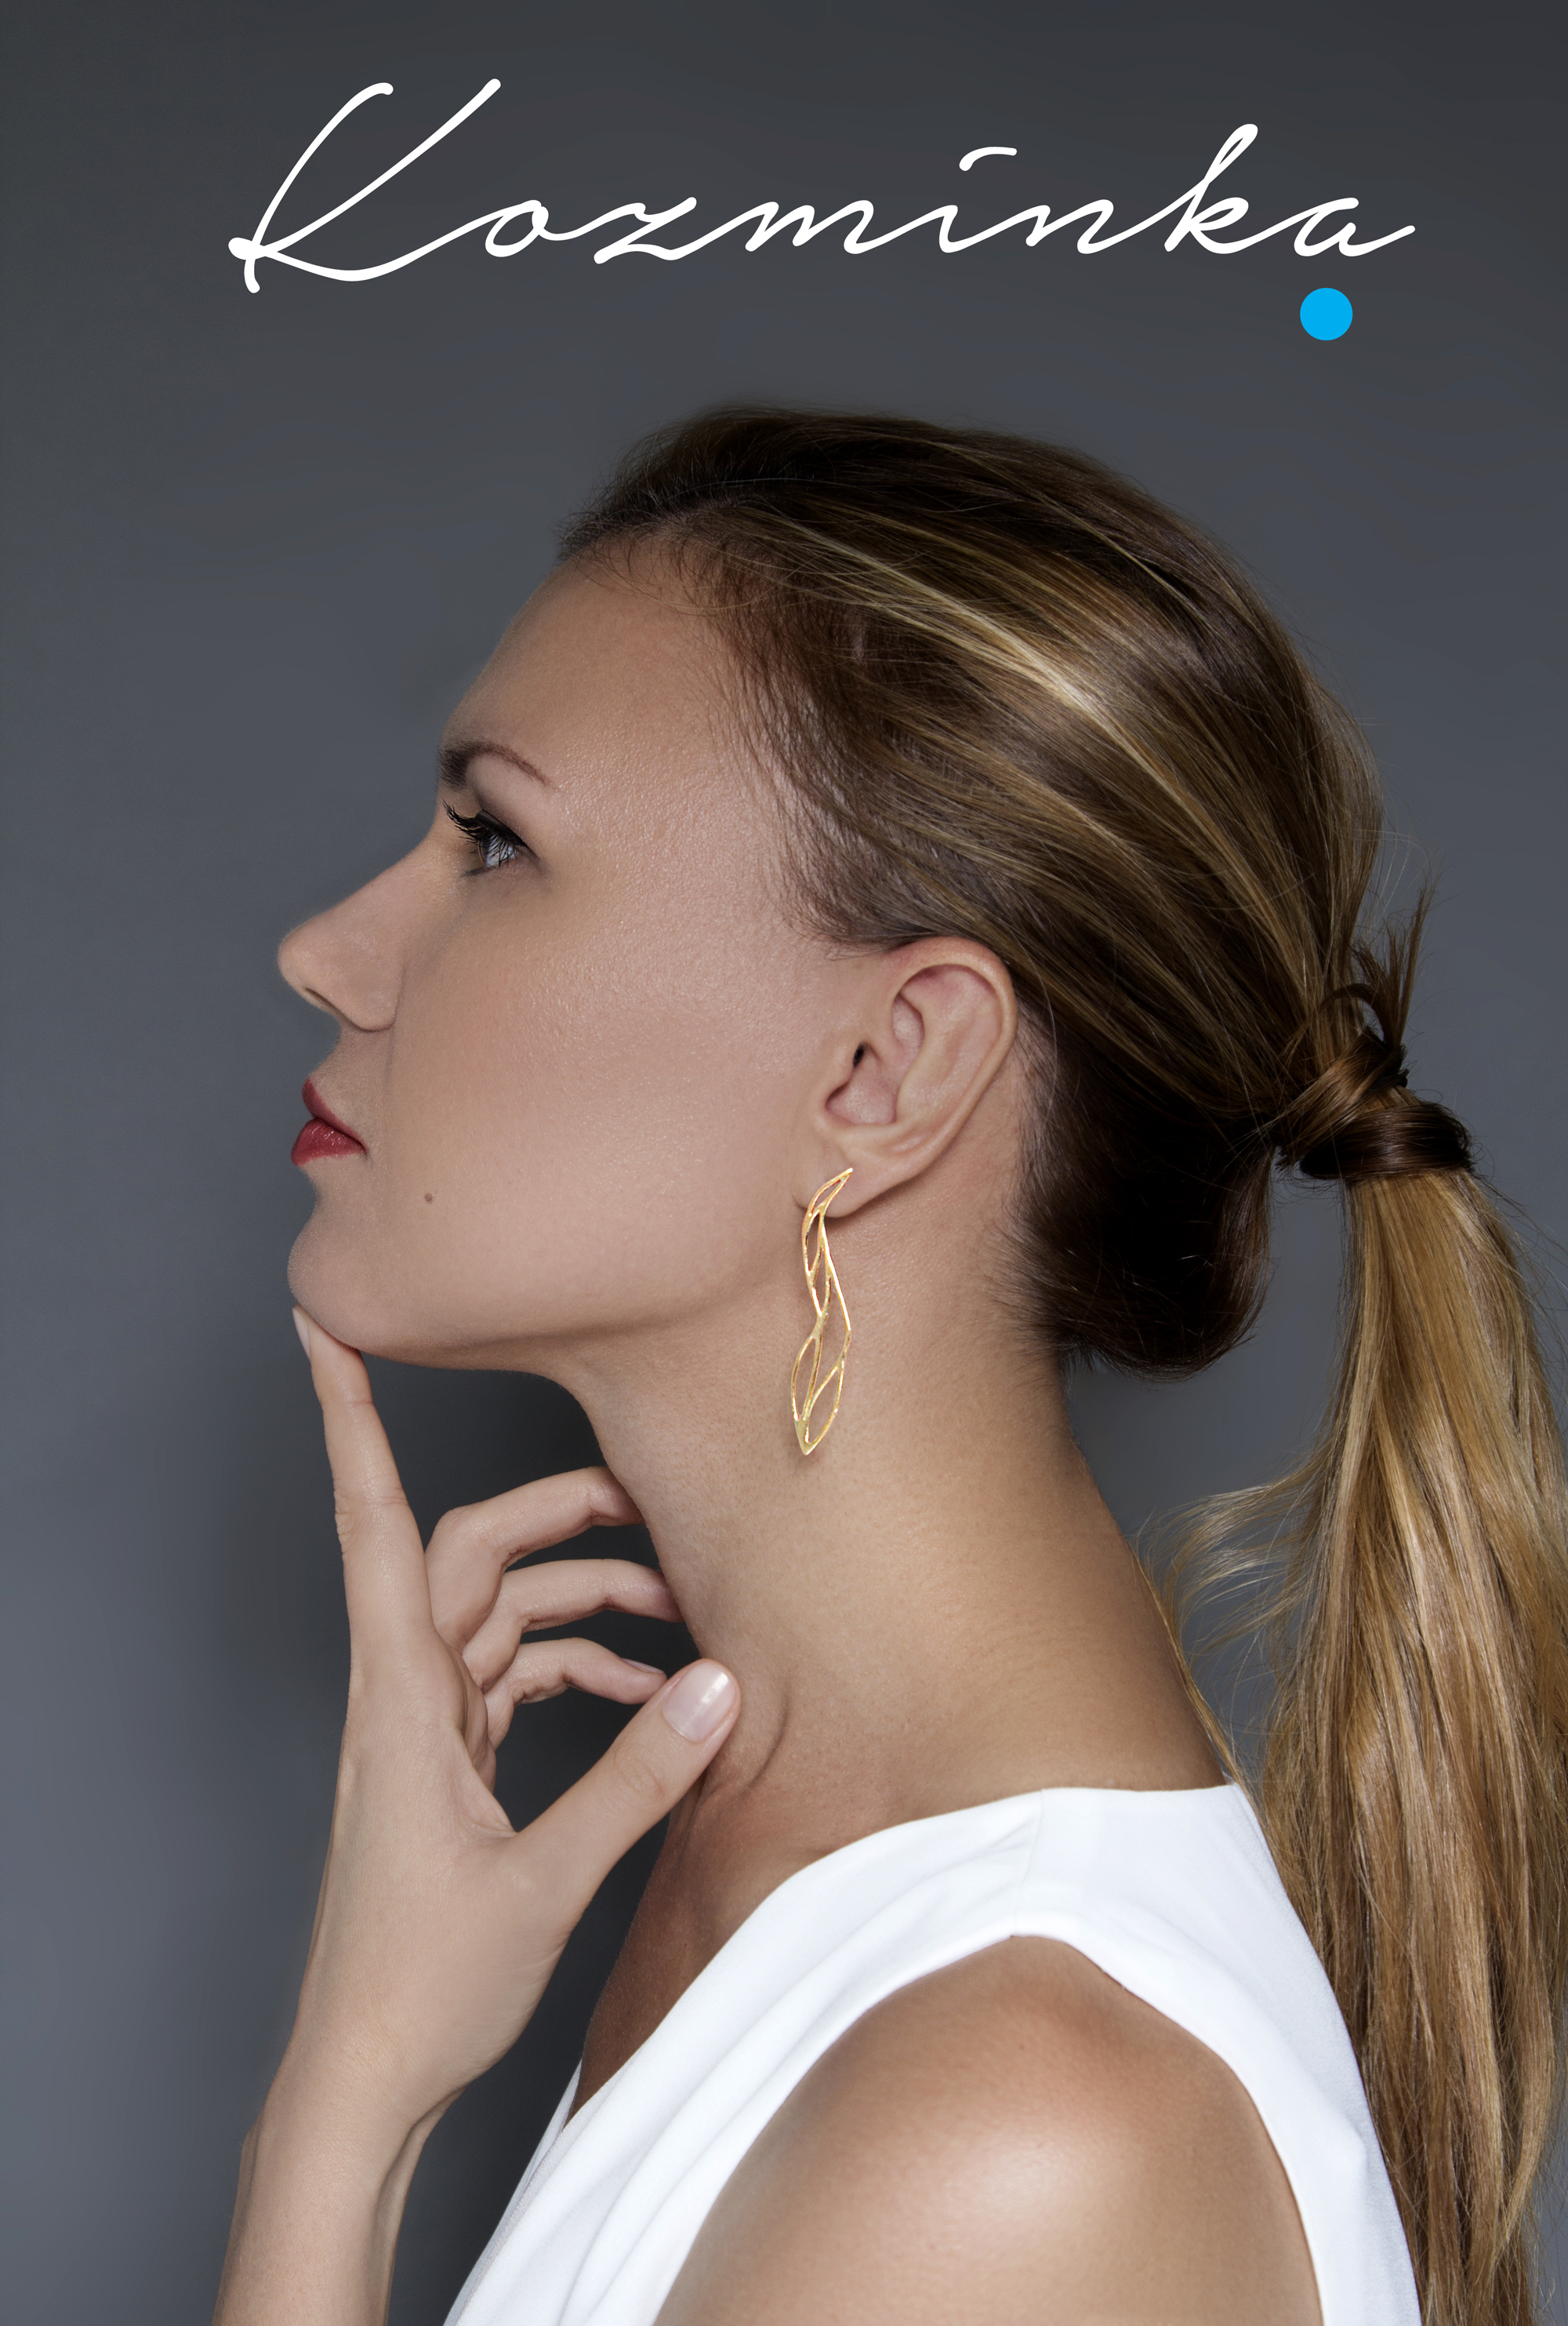 kozminka-earrings-connections-with-logo-capsule.jpg